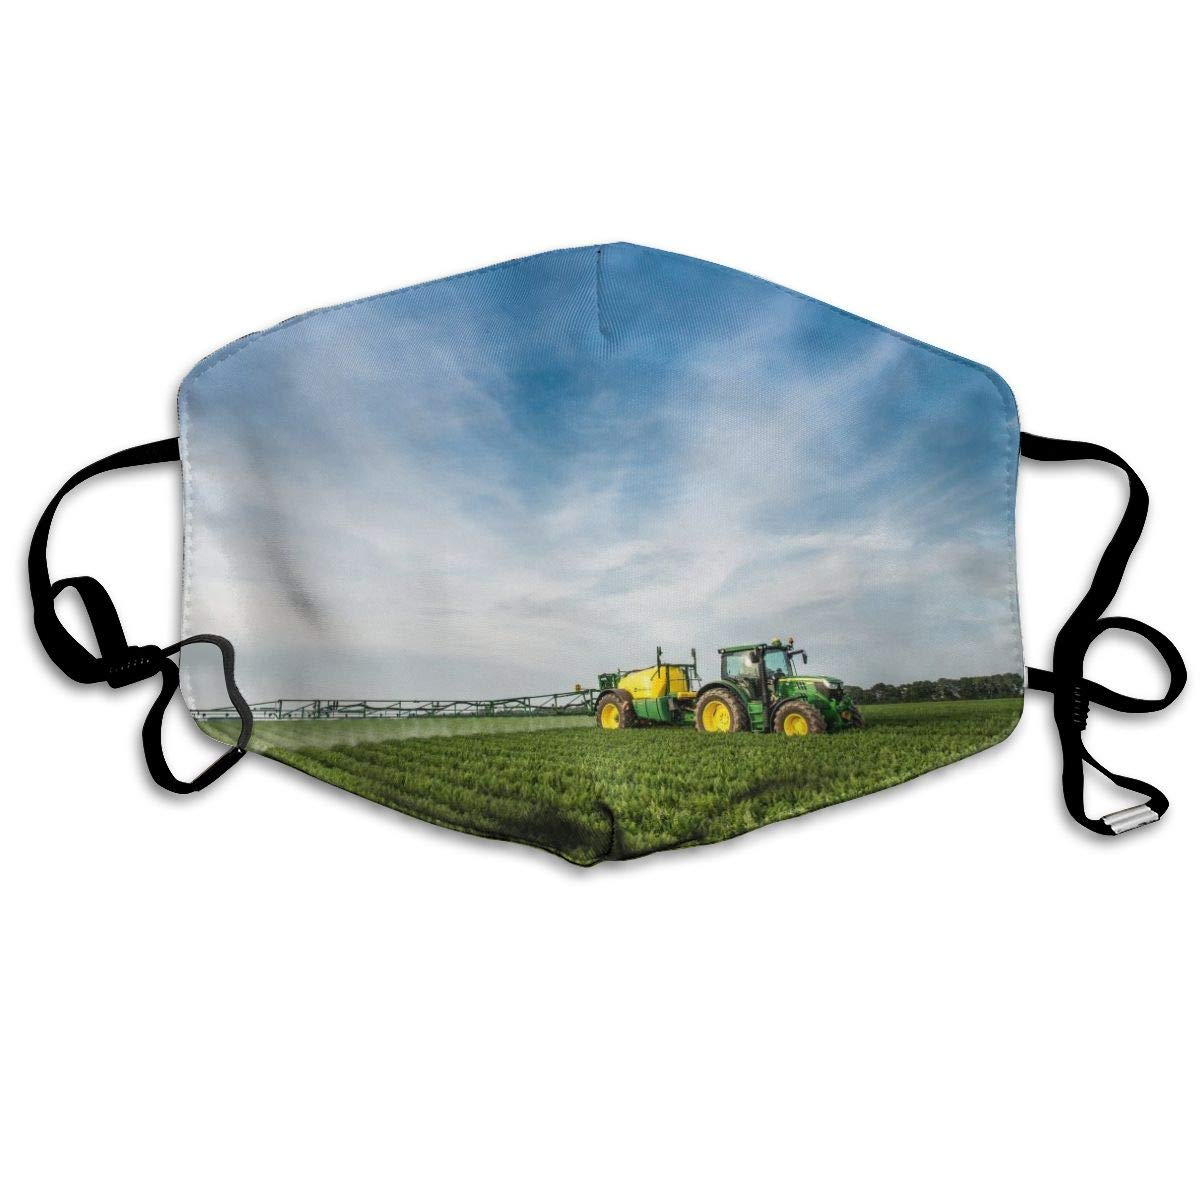 Mouth Mask Tractor Farm Print Masks - Breathable Adjustable Windproof Mouth-Muffle, Camping Running For Women And Men